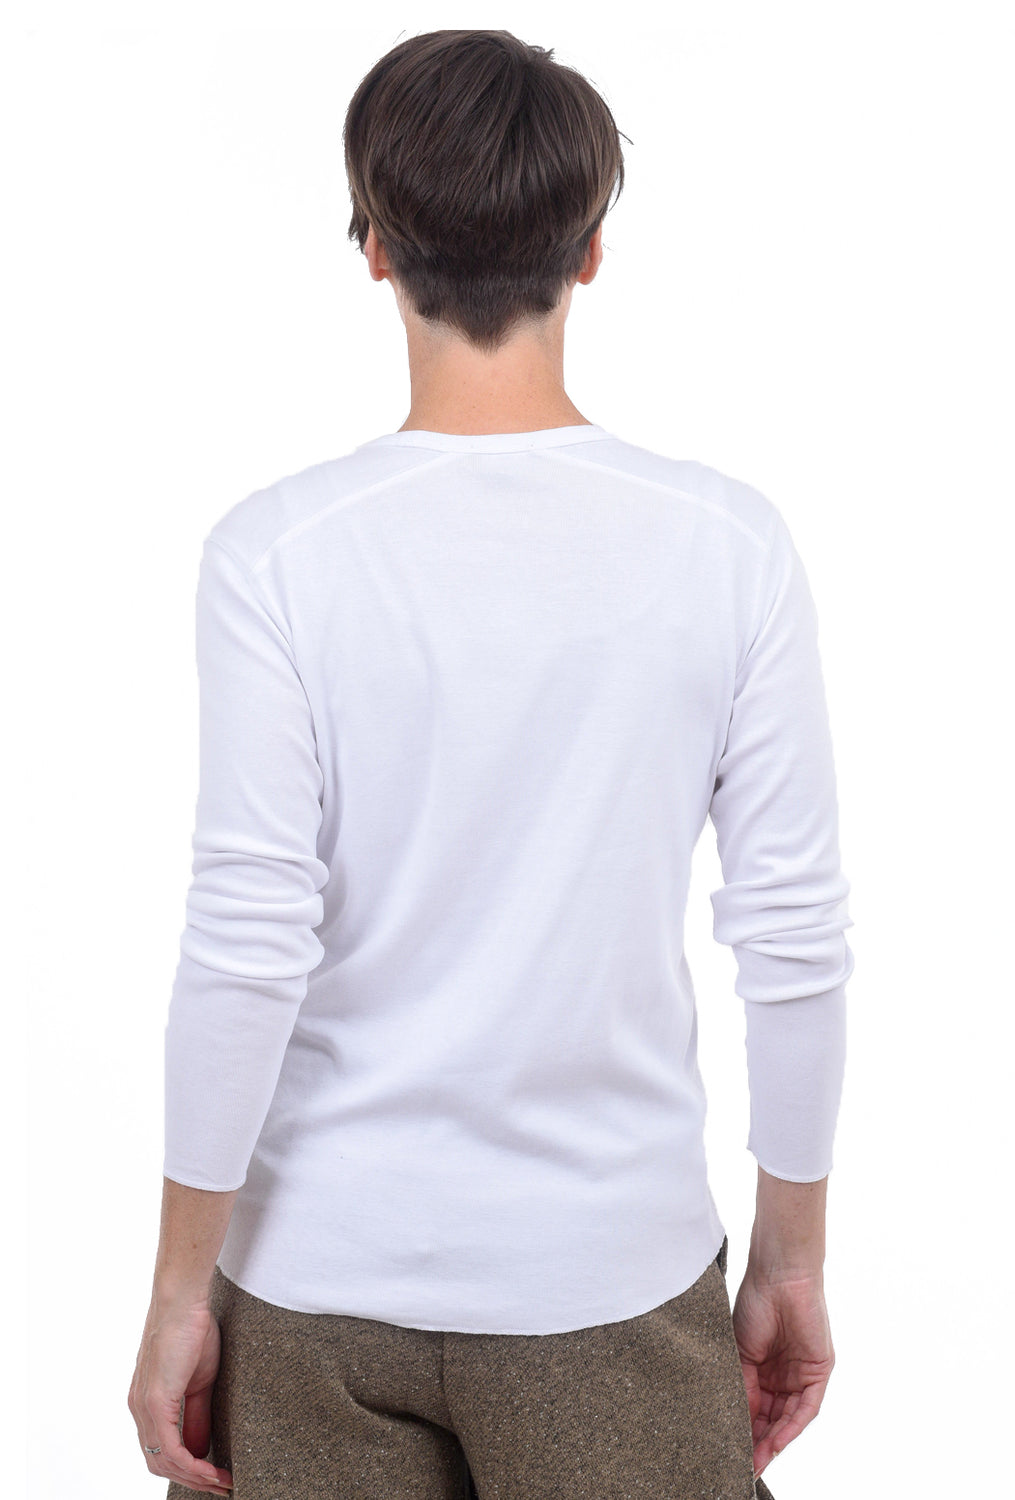 Lilla P Seamed Crewneck, White